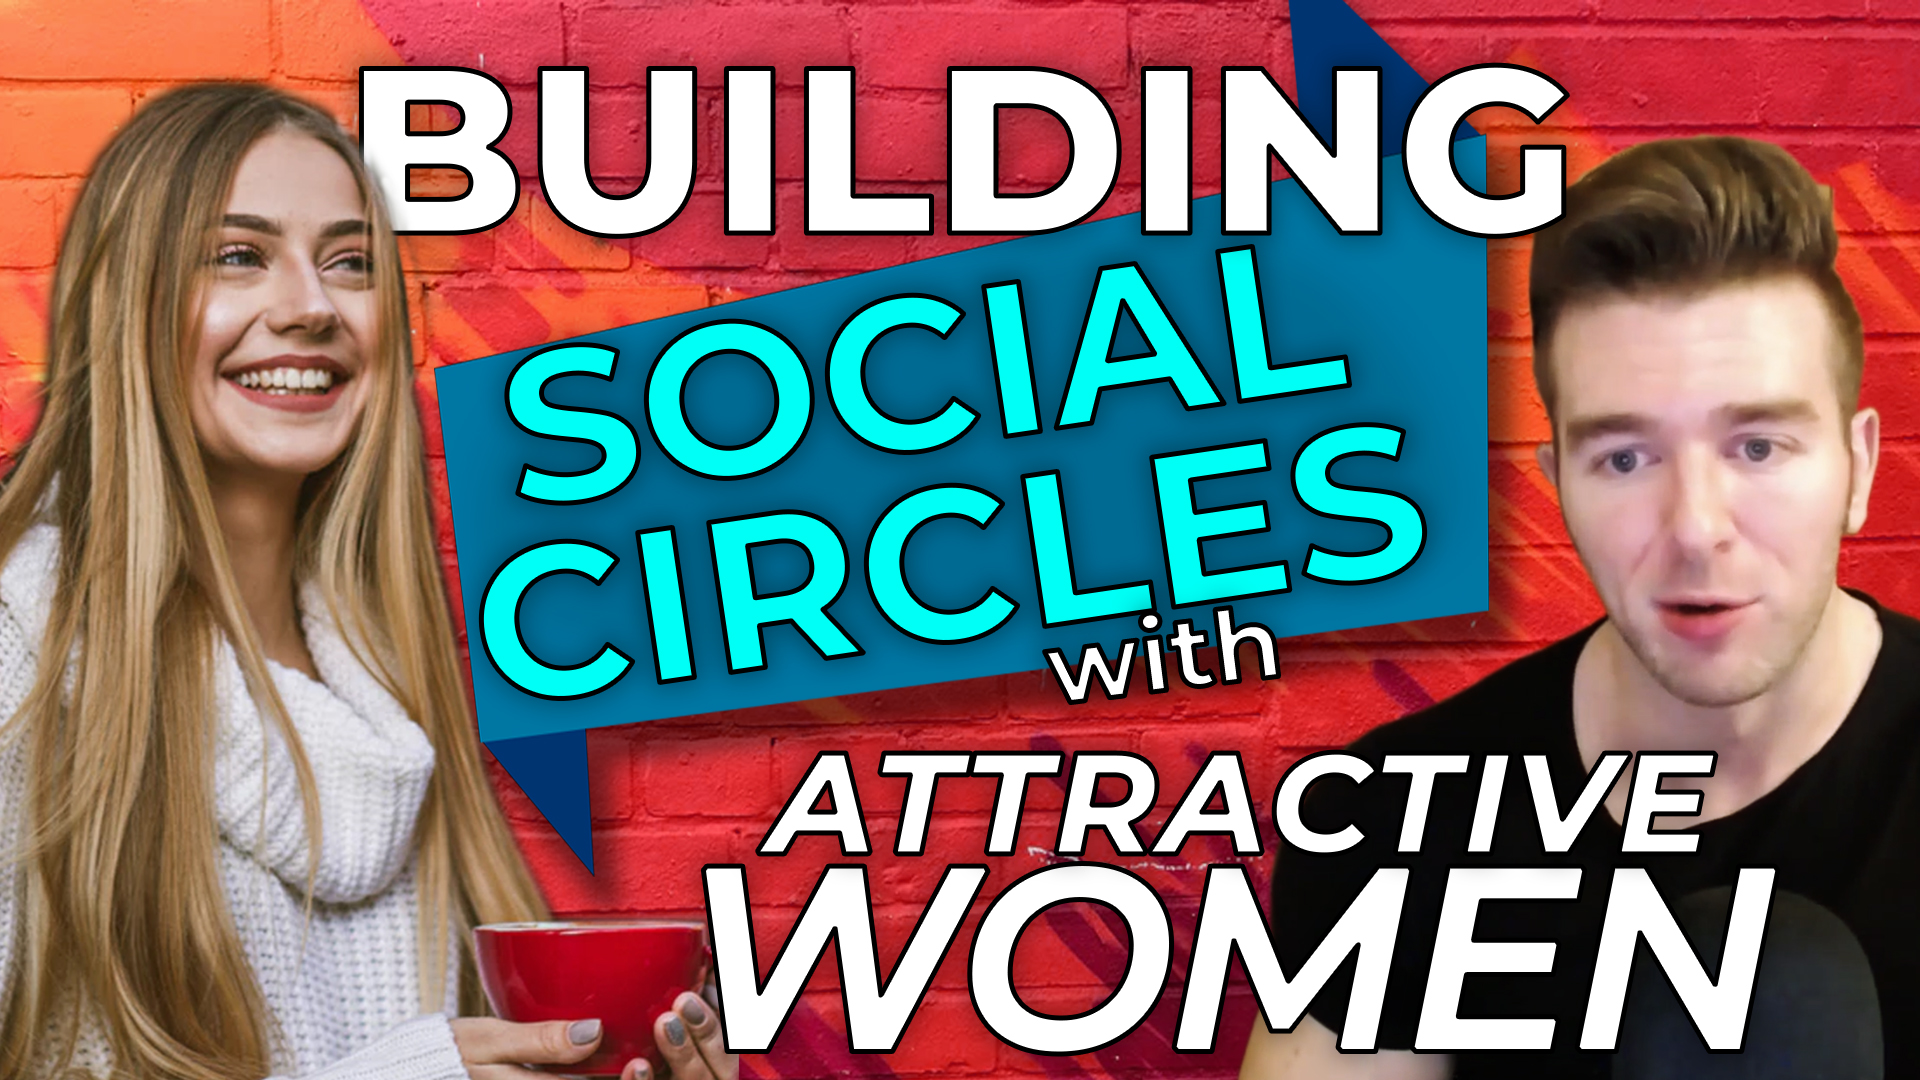 How to build social circles in college with attractive women